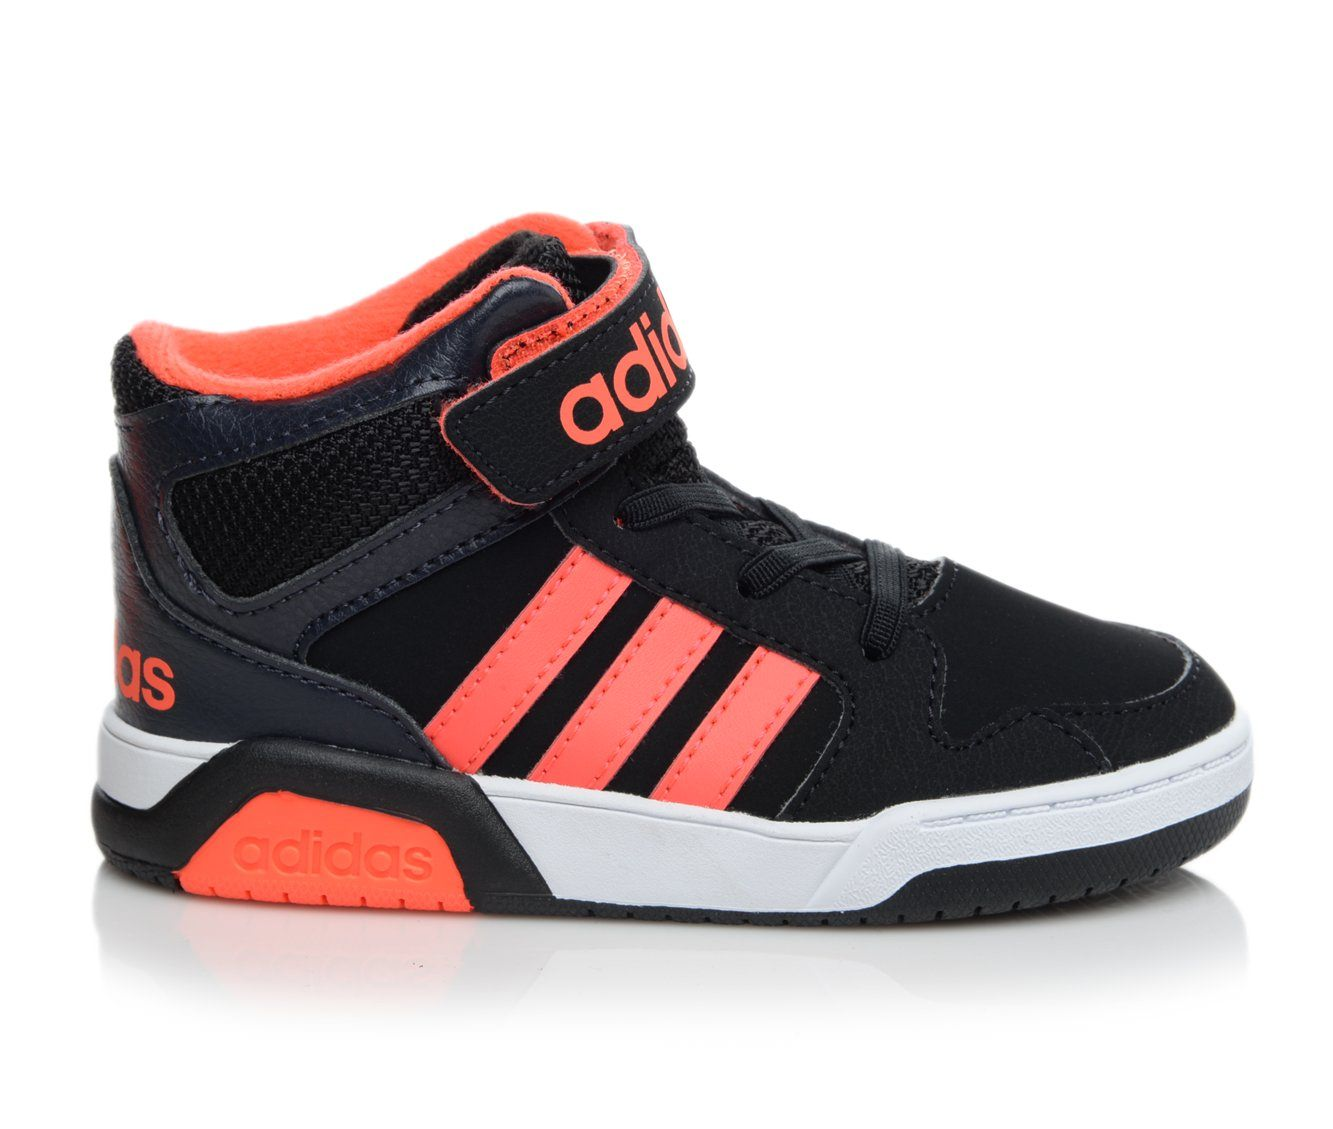 Boys' Adidas Infant BB9TIS Sneakers (Black - Size 4 - ) 1570627